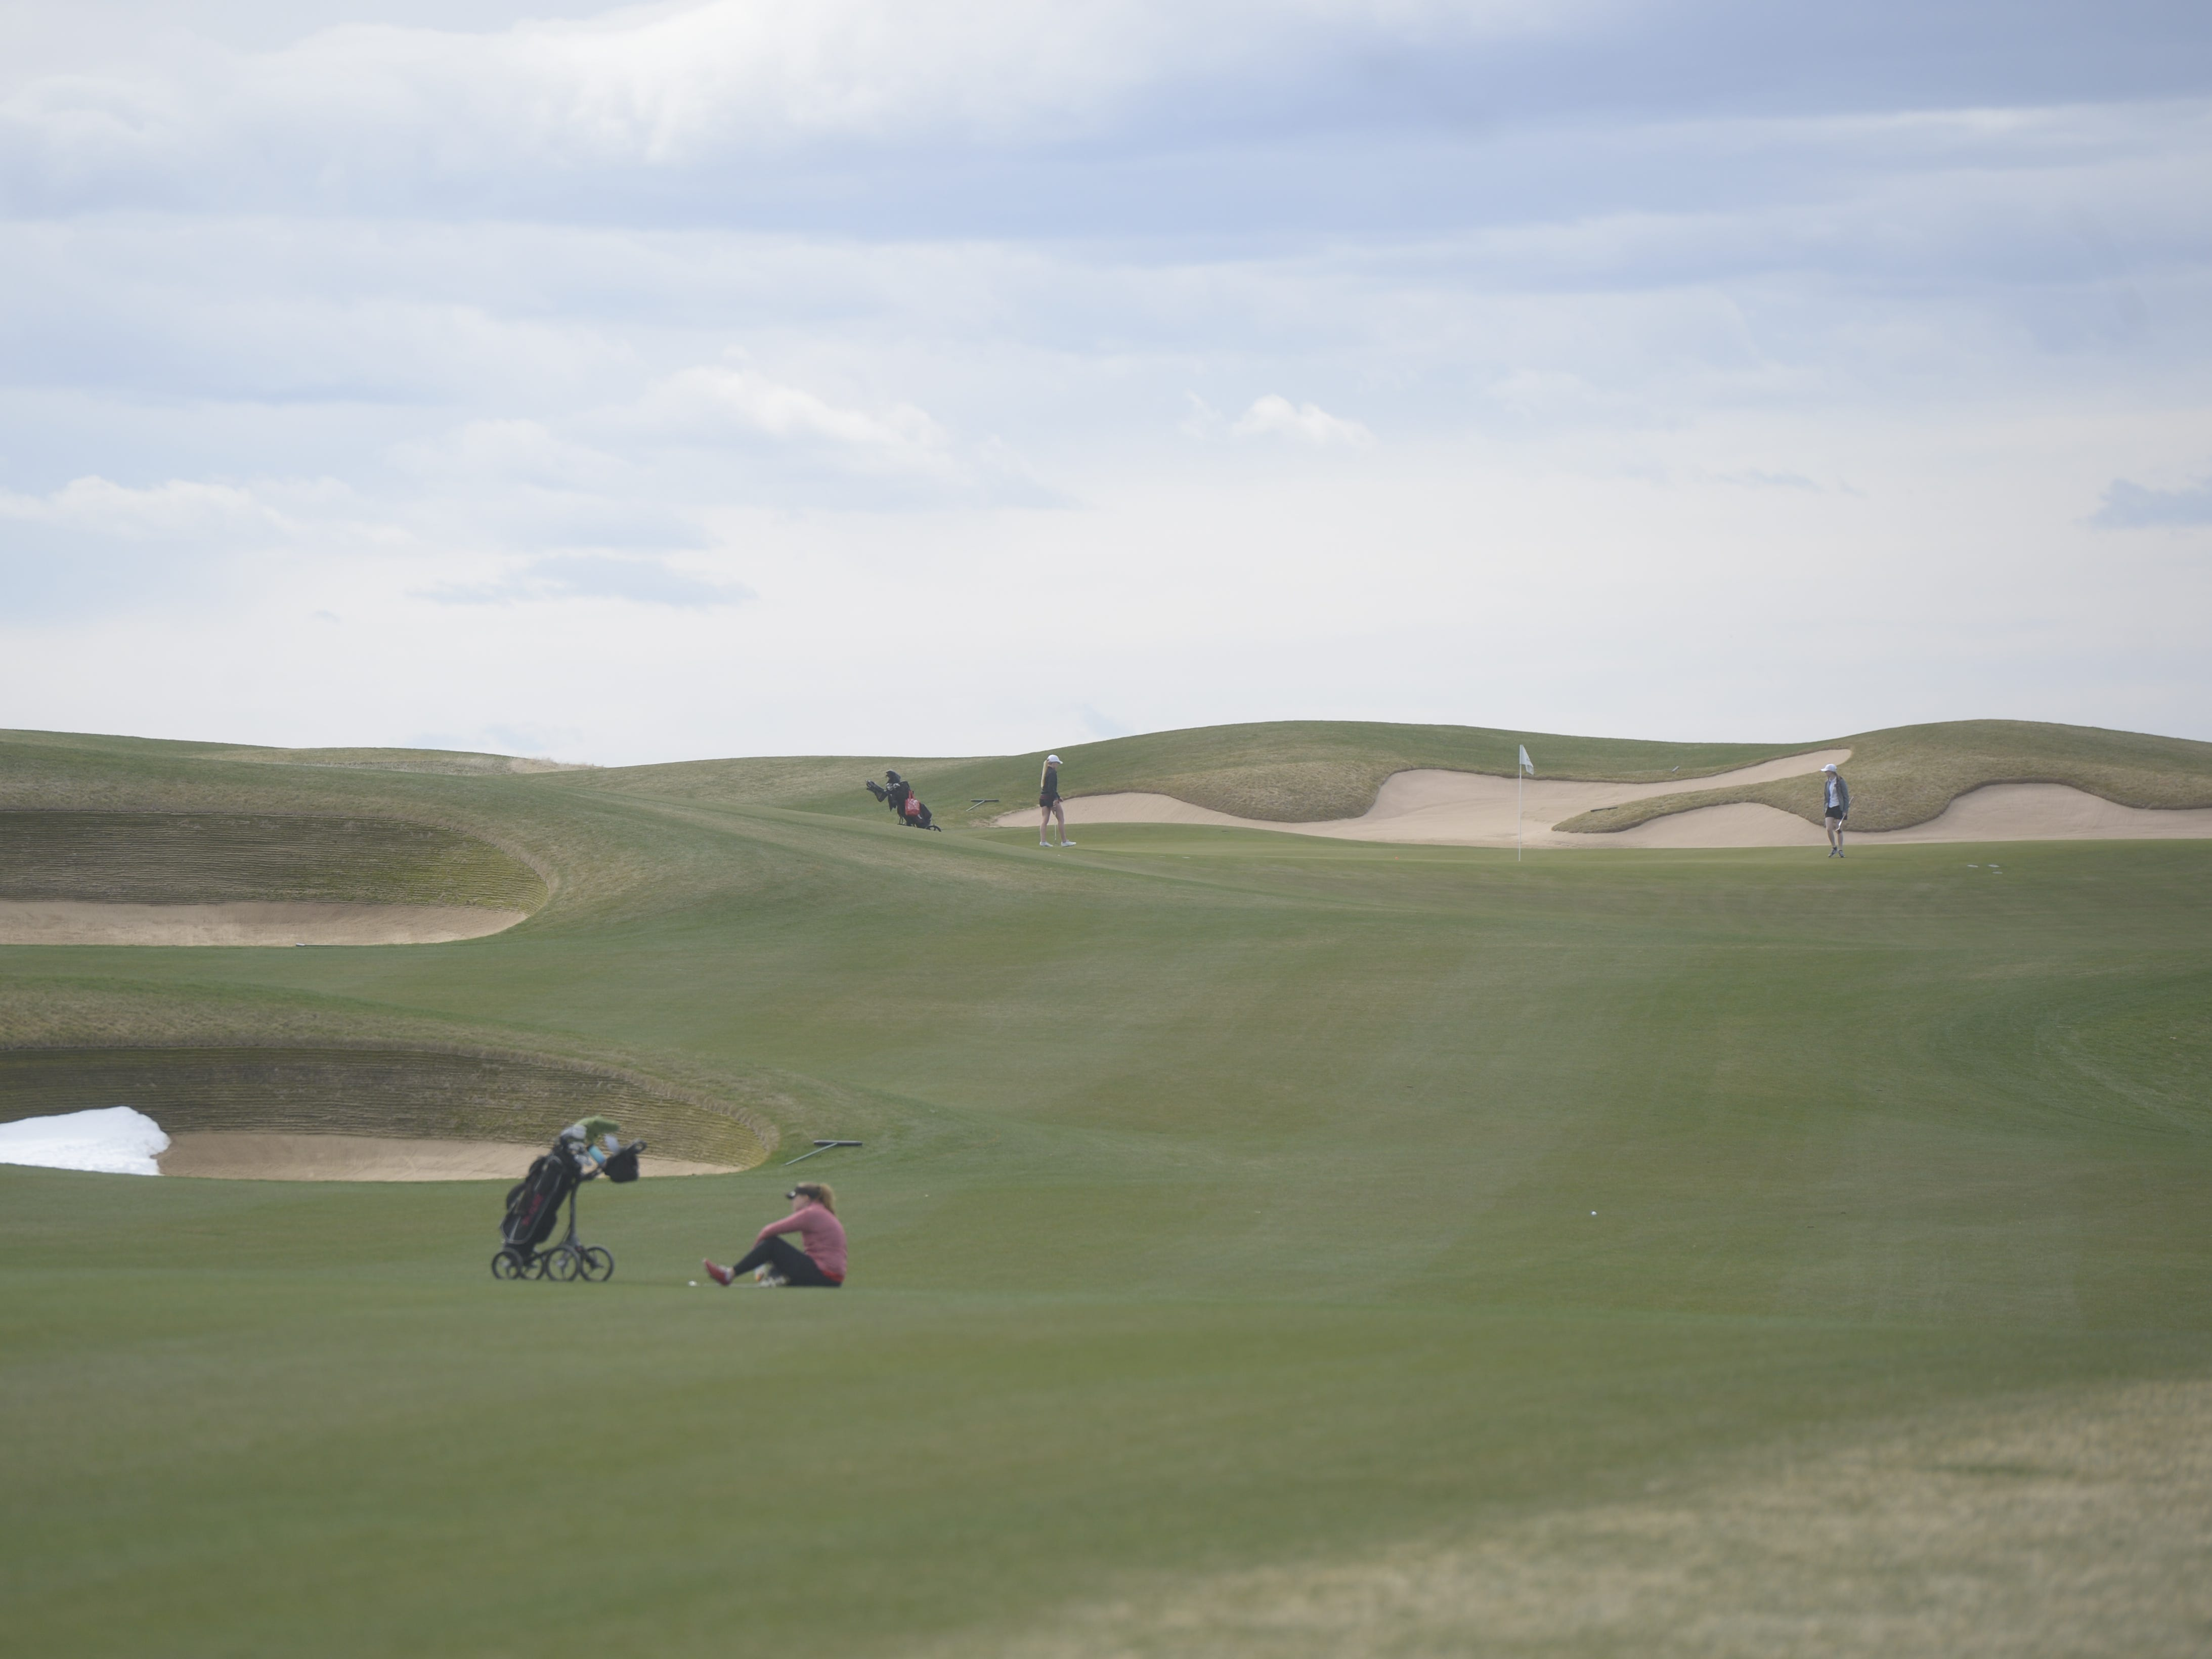 A golfer waits in the fairway for the green to clear at the Tri-Valley League match at TPC Colorado in Berthoud on Monday, April 15. Windsor won the event. It's the first Tournament Players Club course in the state.